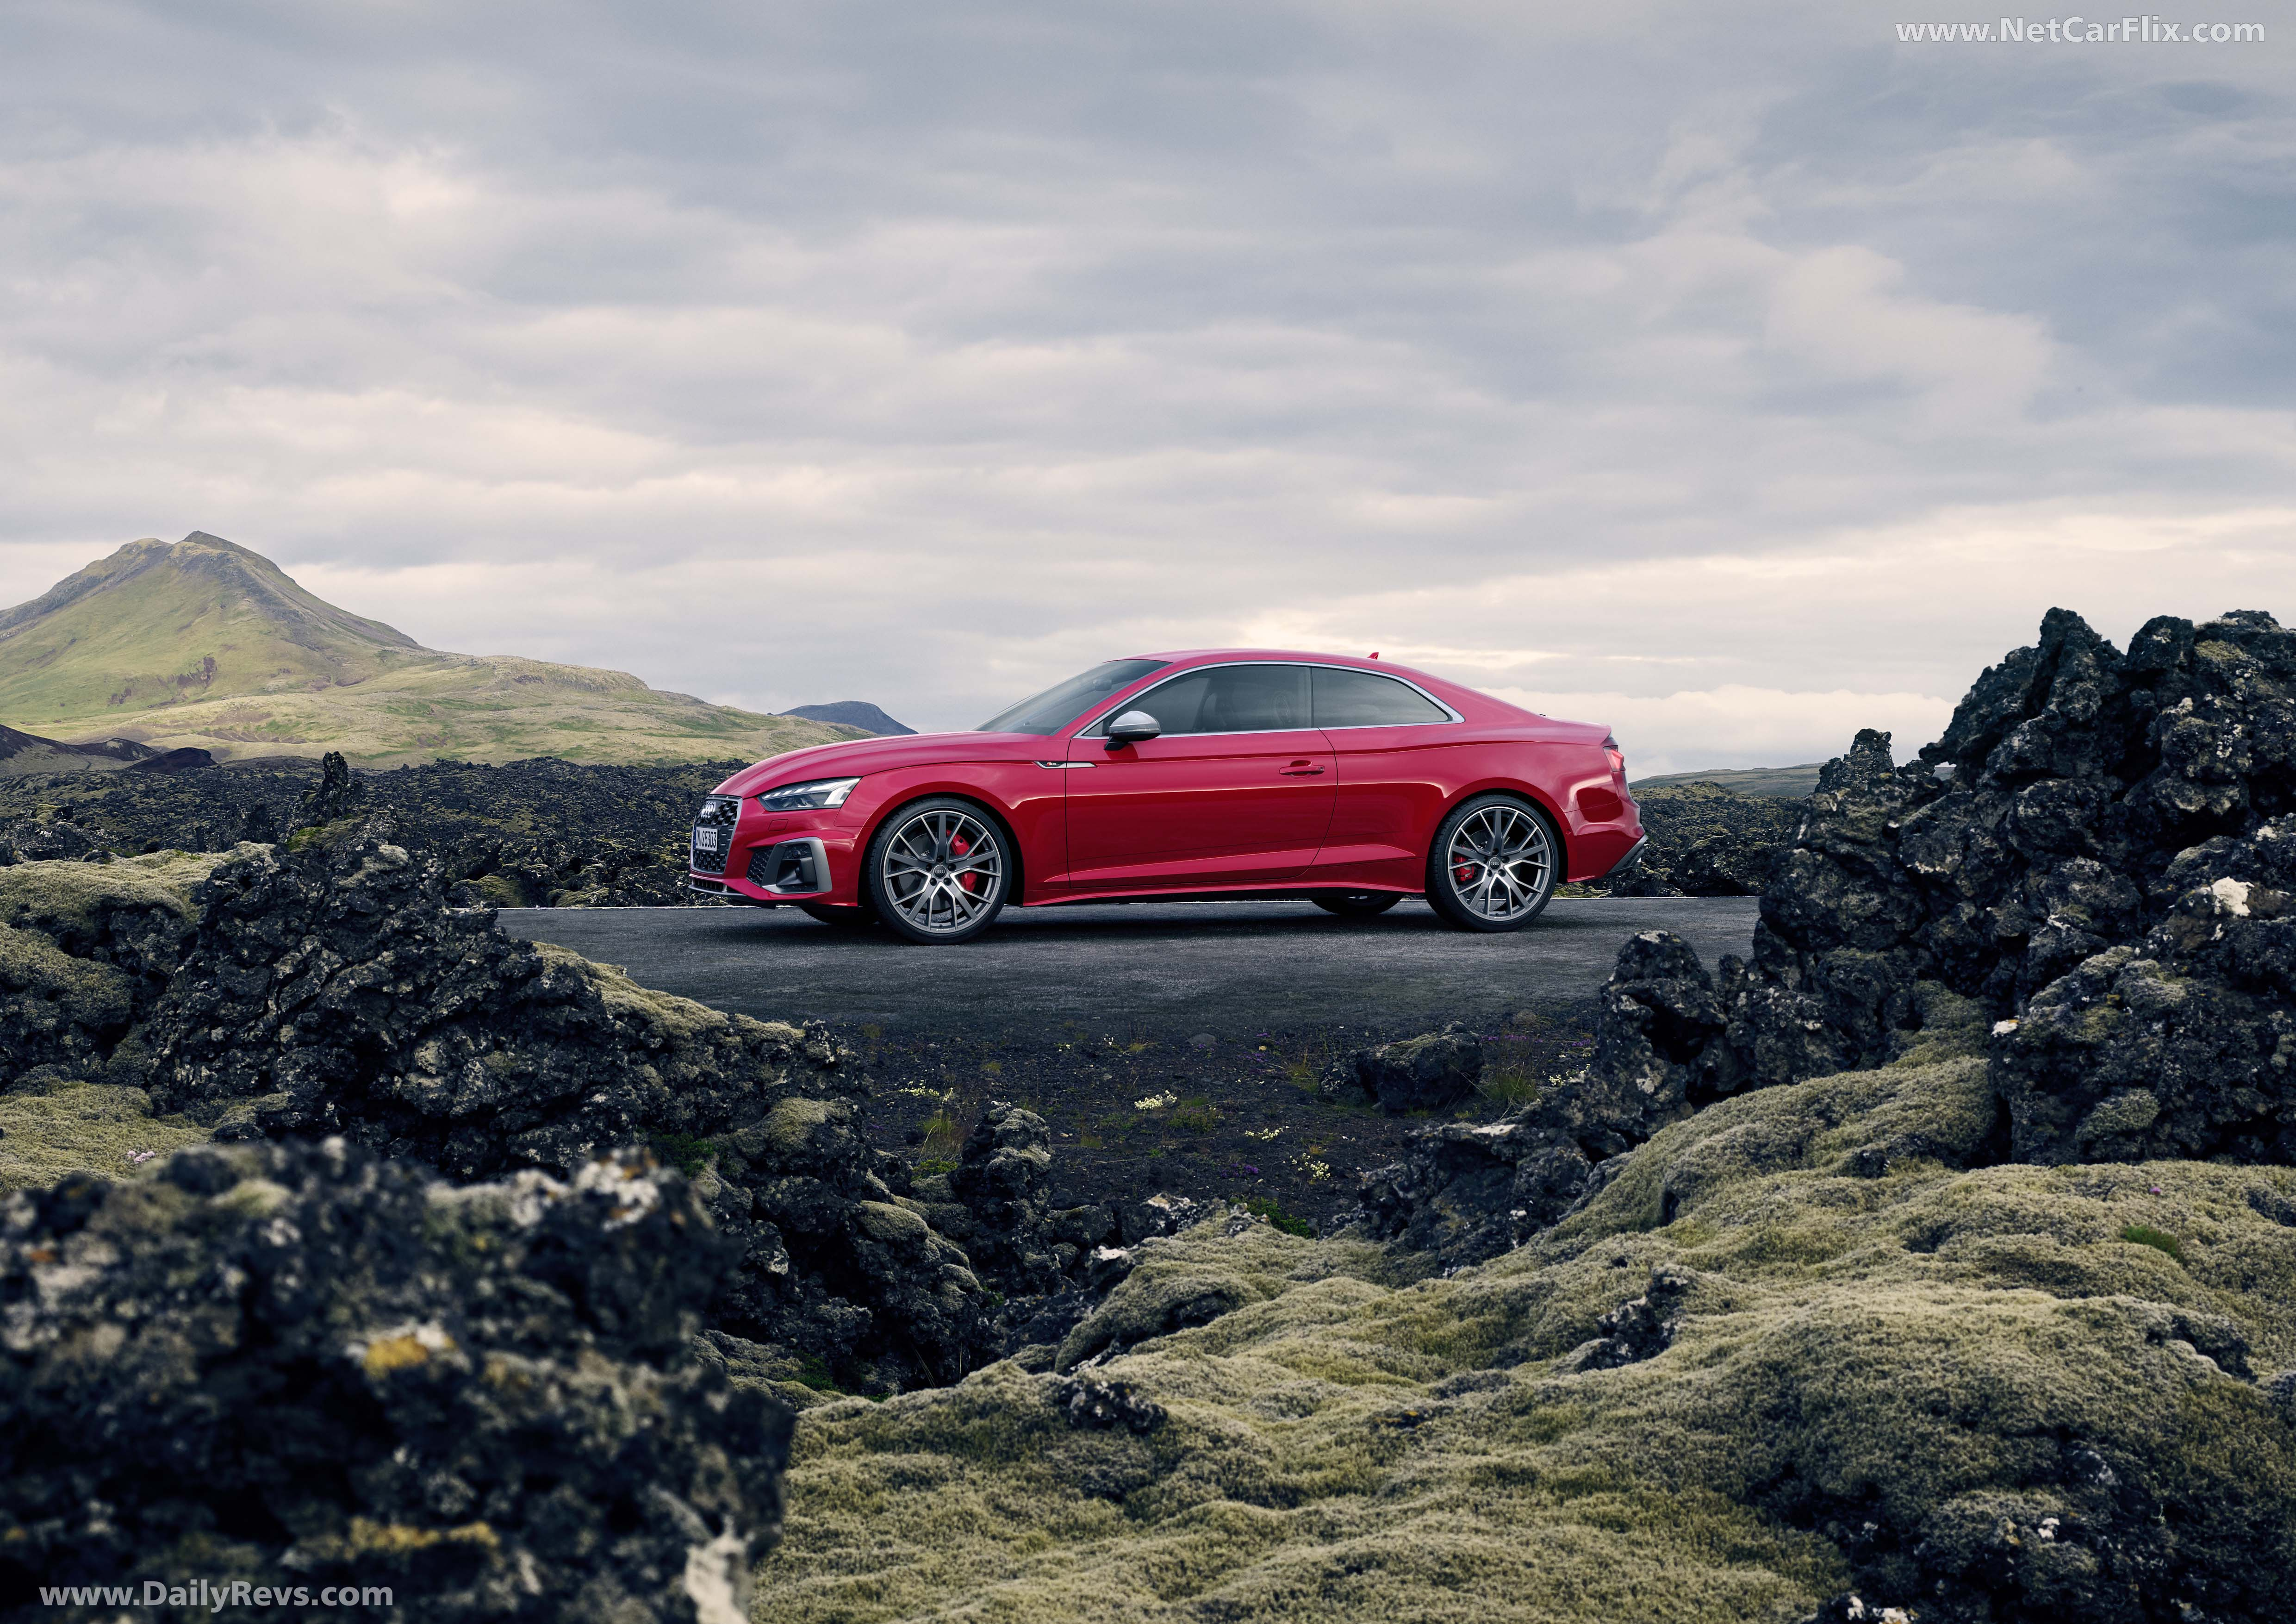 2020 Audi S5 Coupe TDI - Pictures, Images, Photos ...